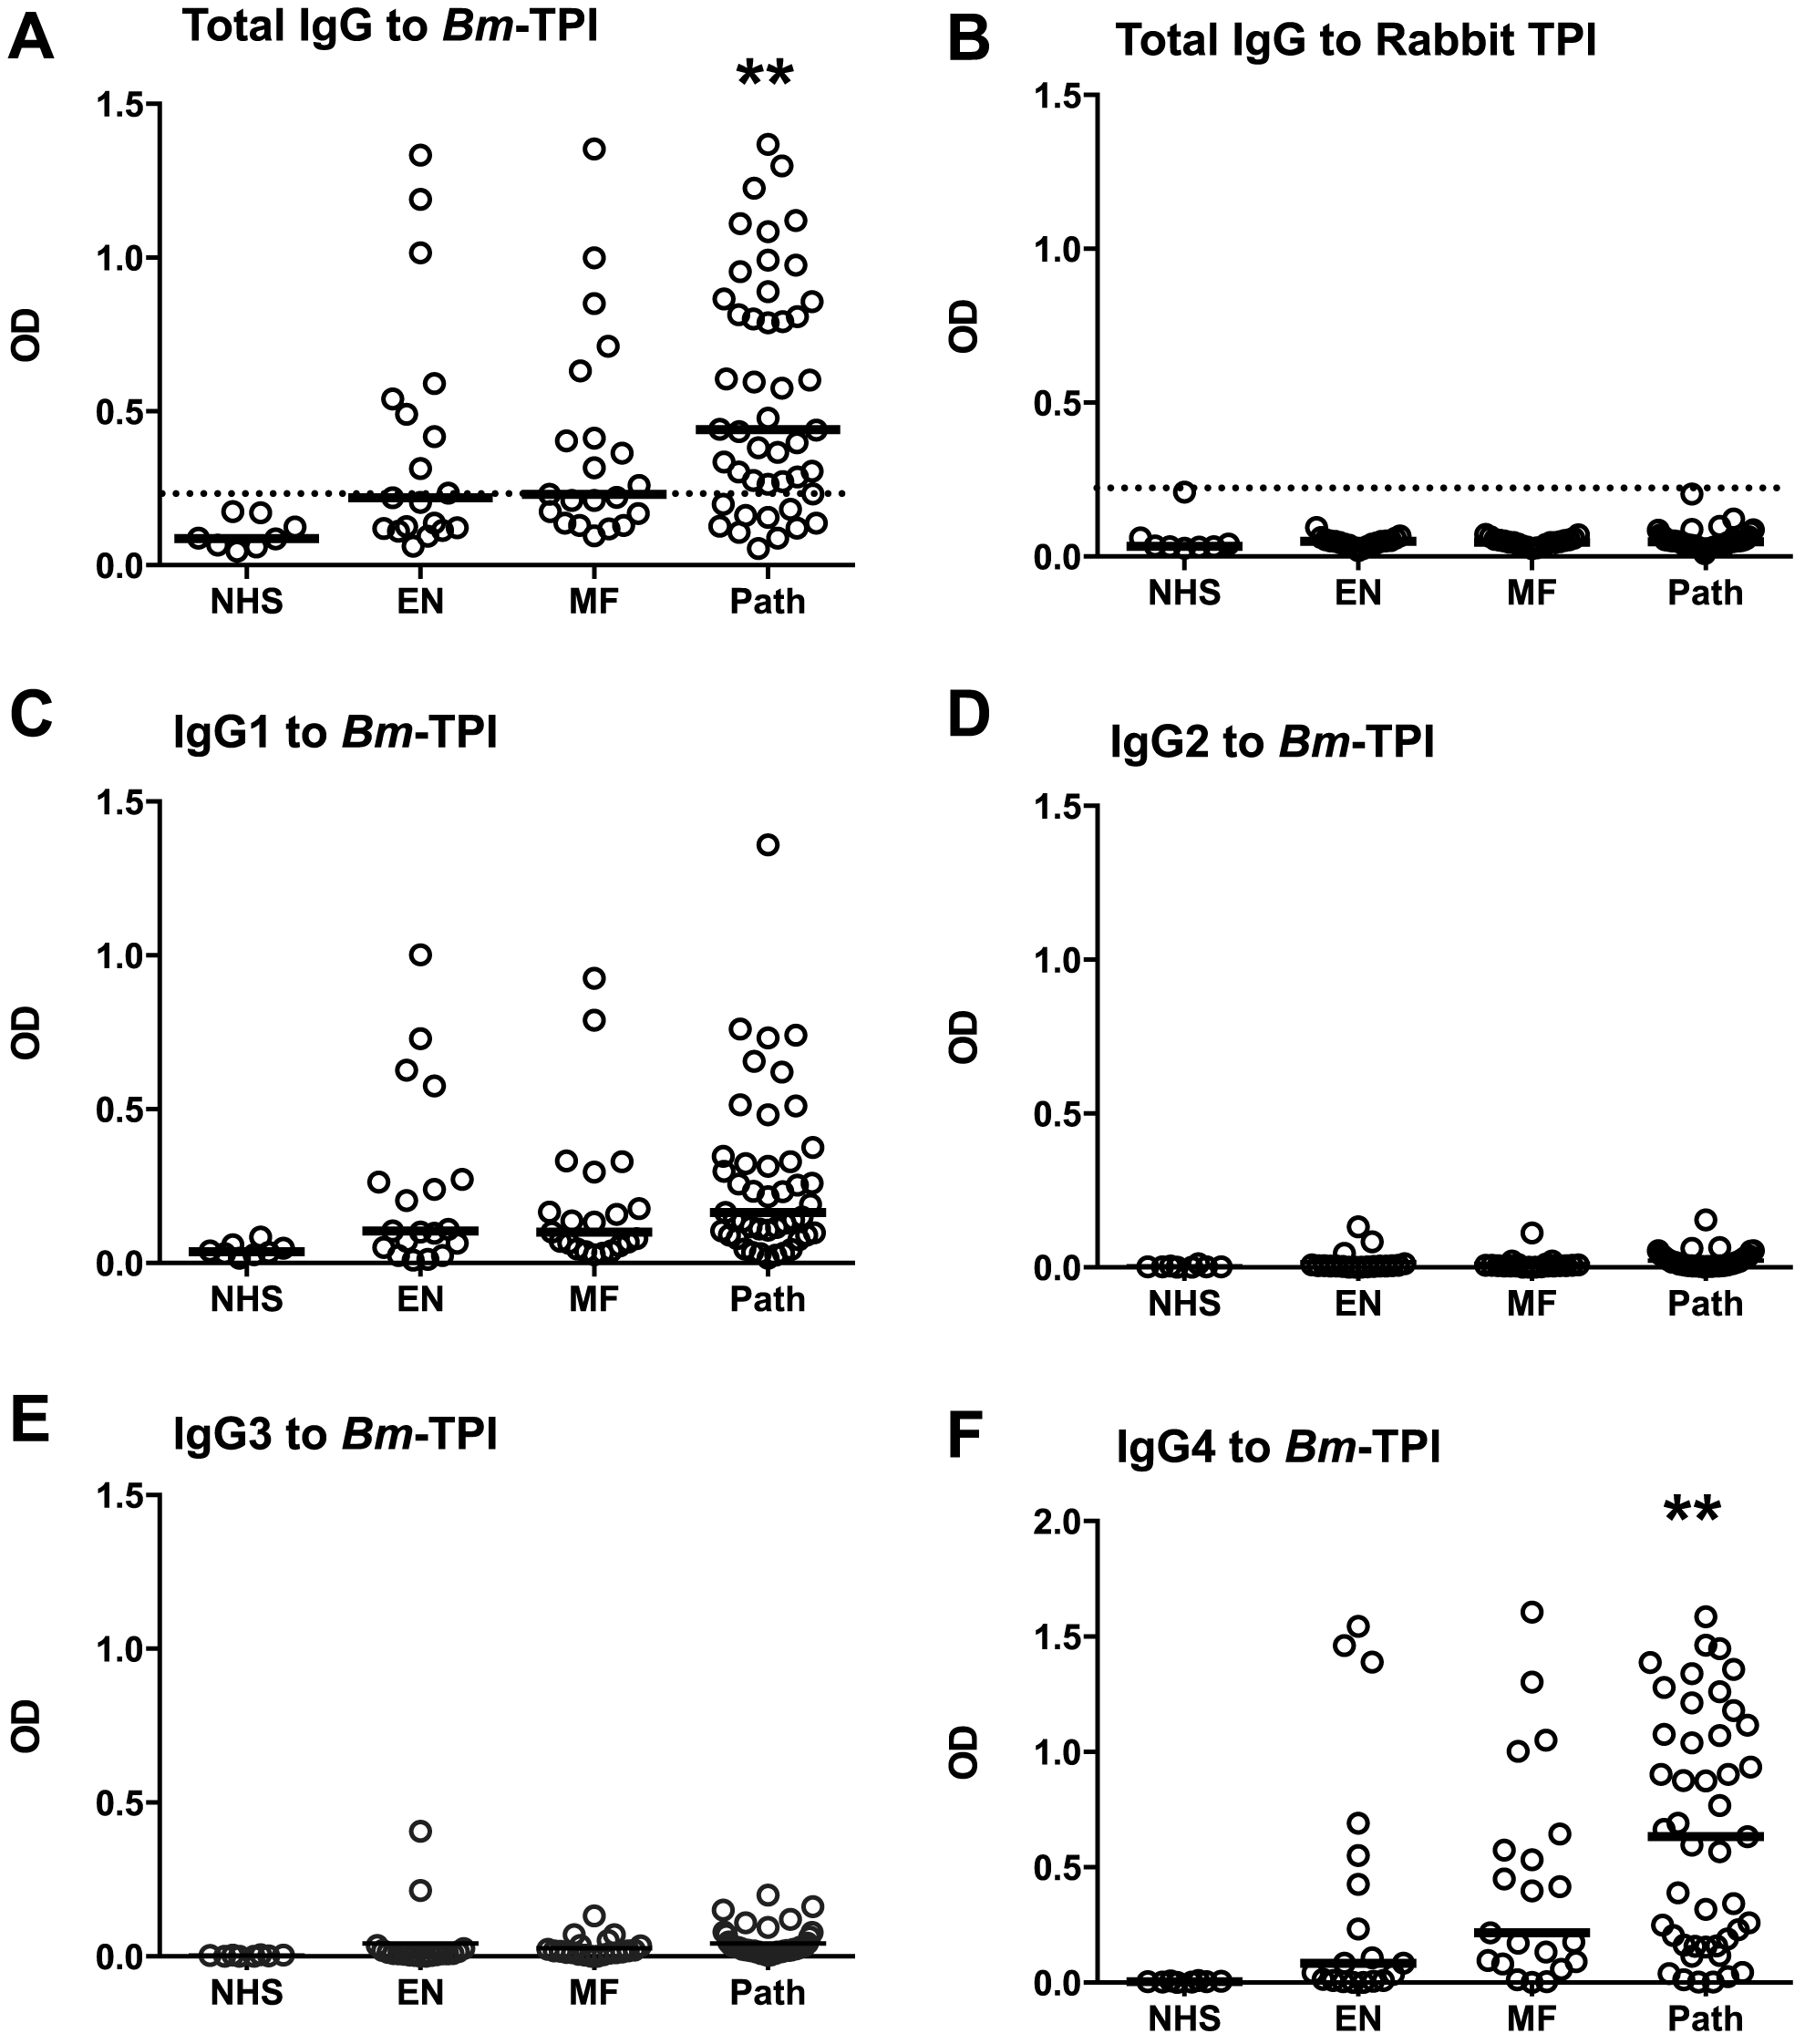 Anti-<i>Bm</i>-TPI antibody levels in <i>B. malayi</i>-infected human filariasis patients.